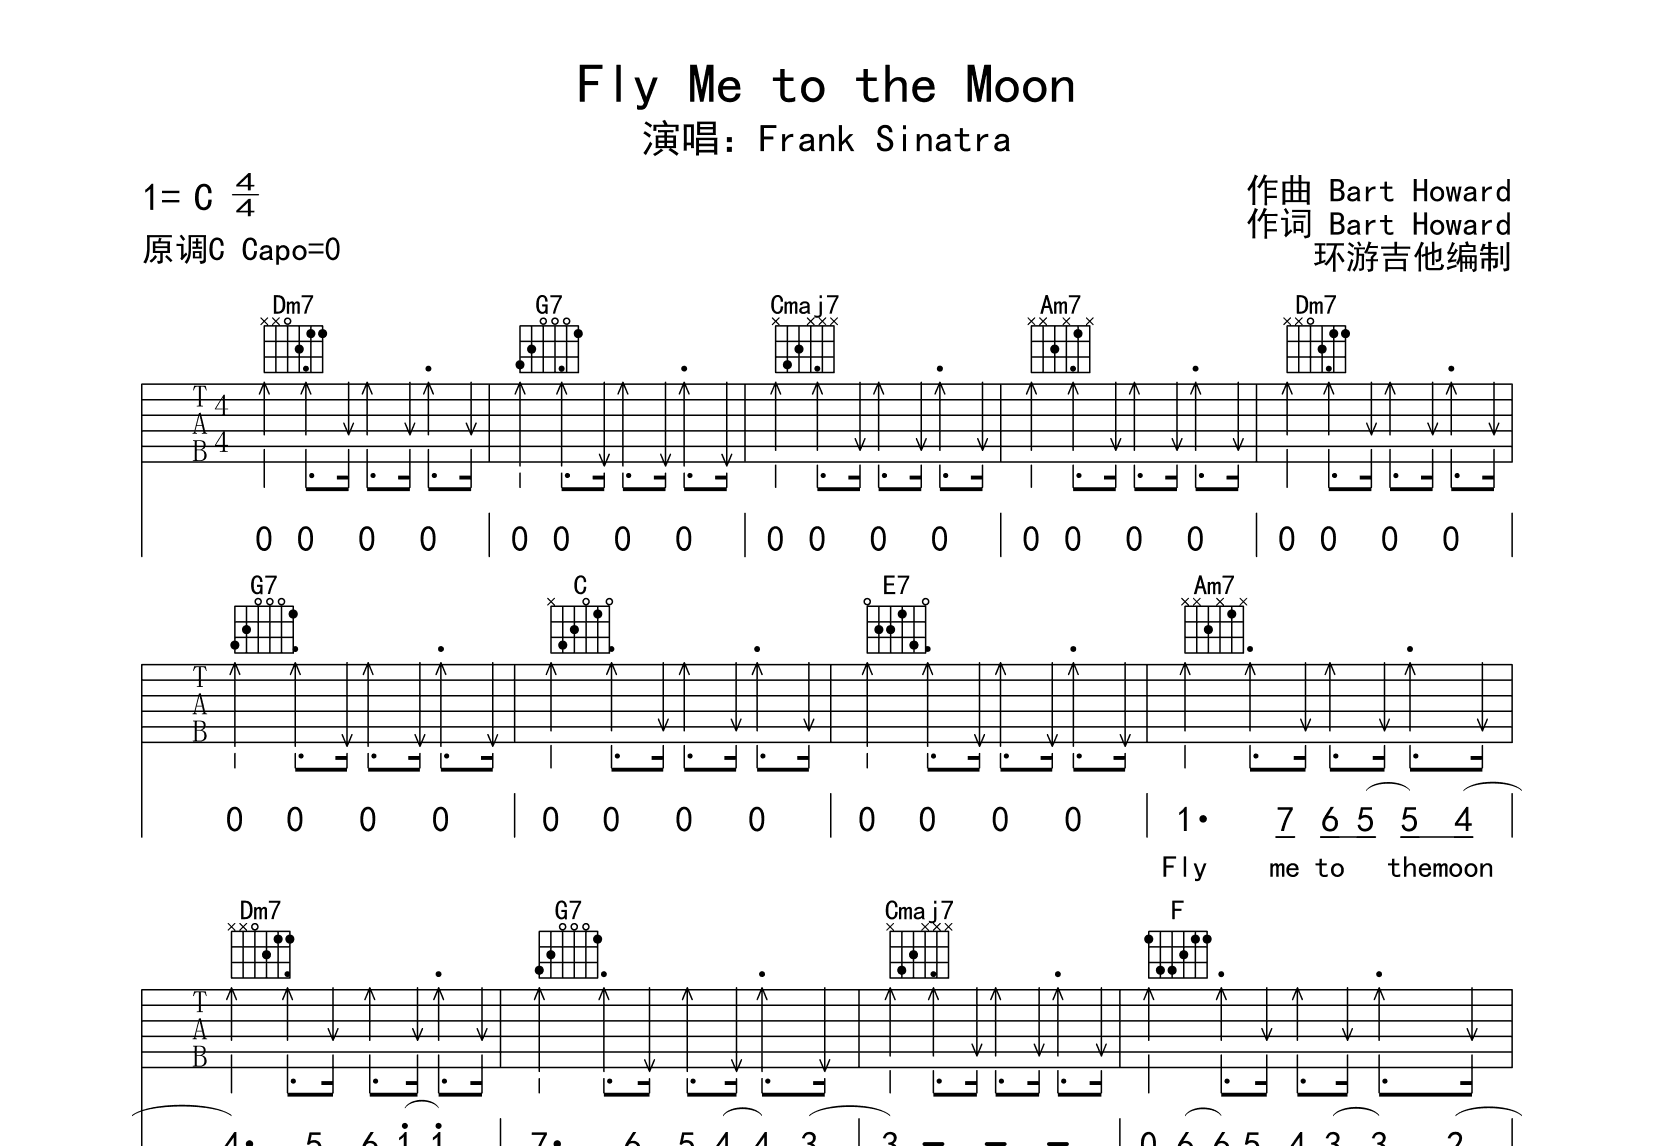 Fly me to the Moon吉他谱_Frank Sinatra_C调弹唱